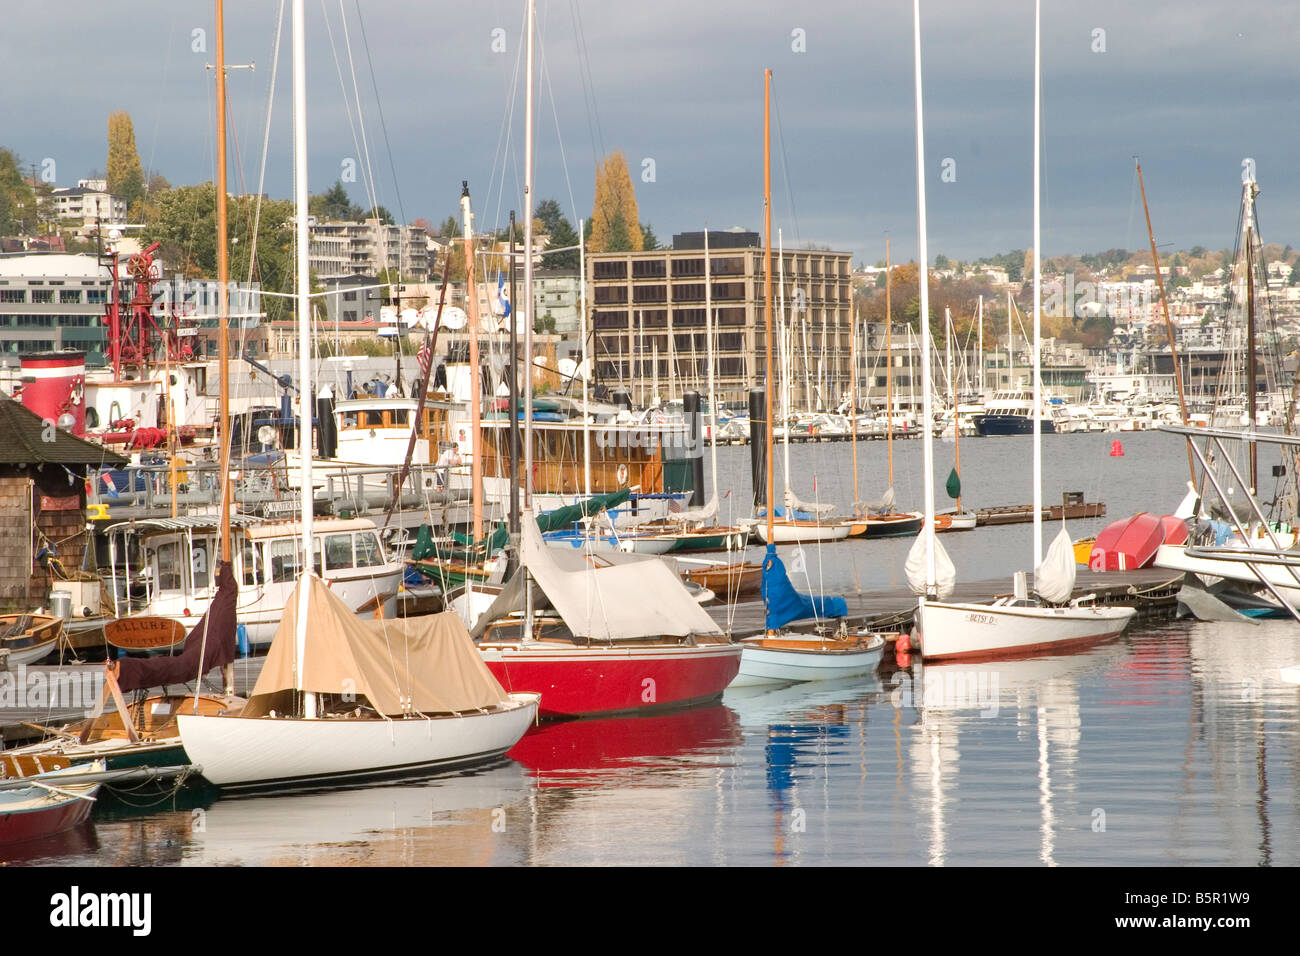 Sailboats in Lake Union - Stock Image